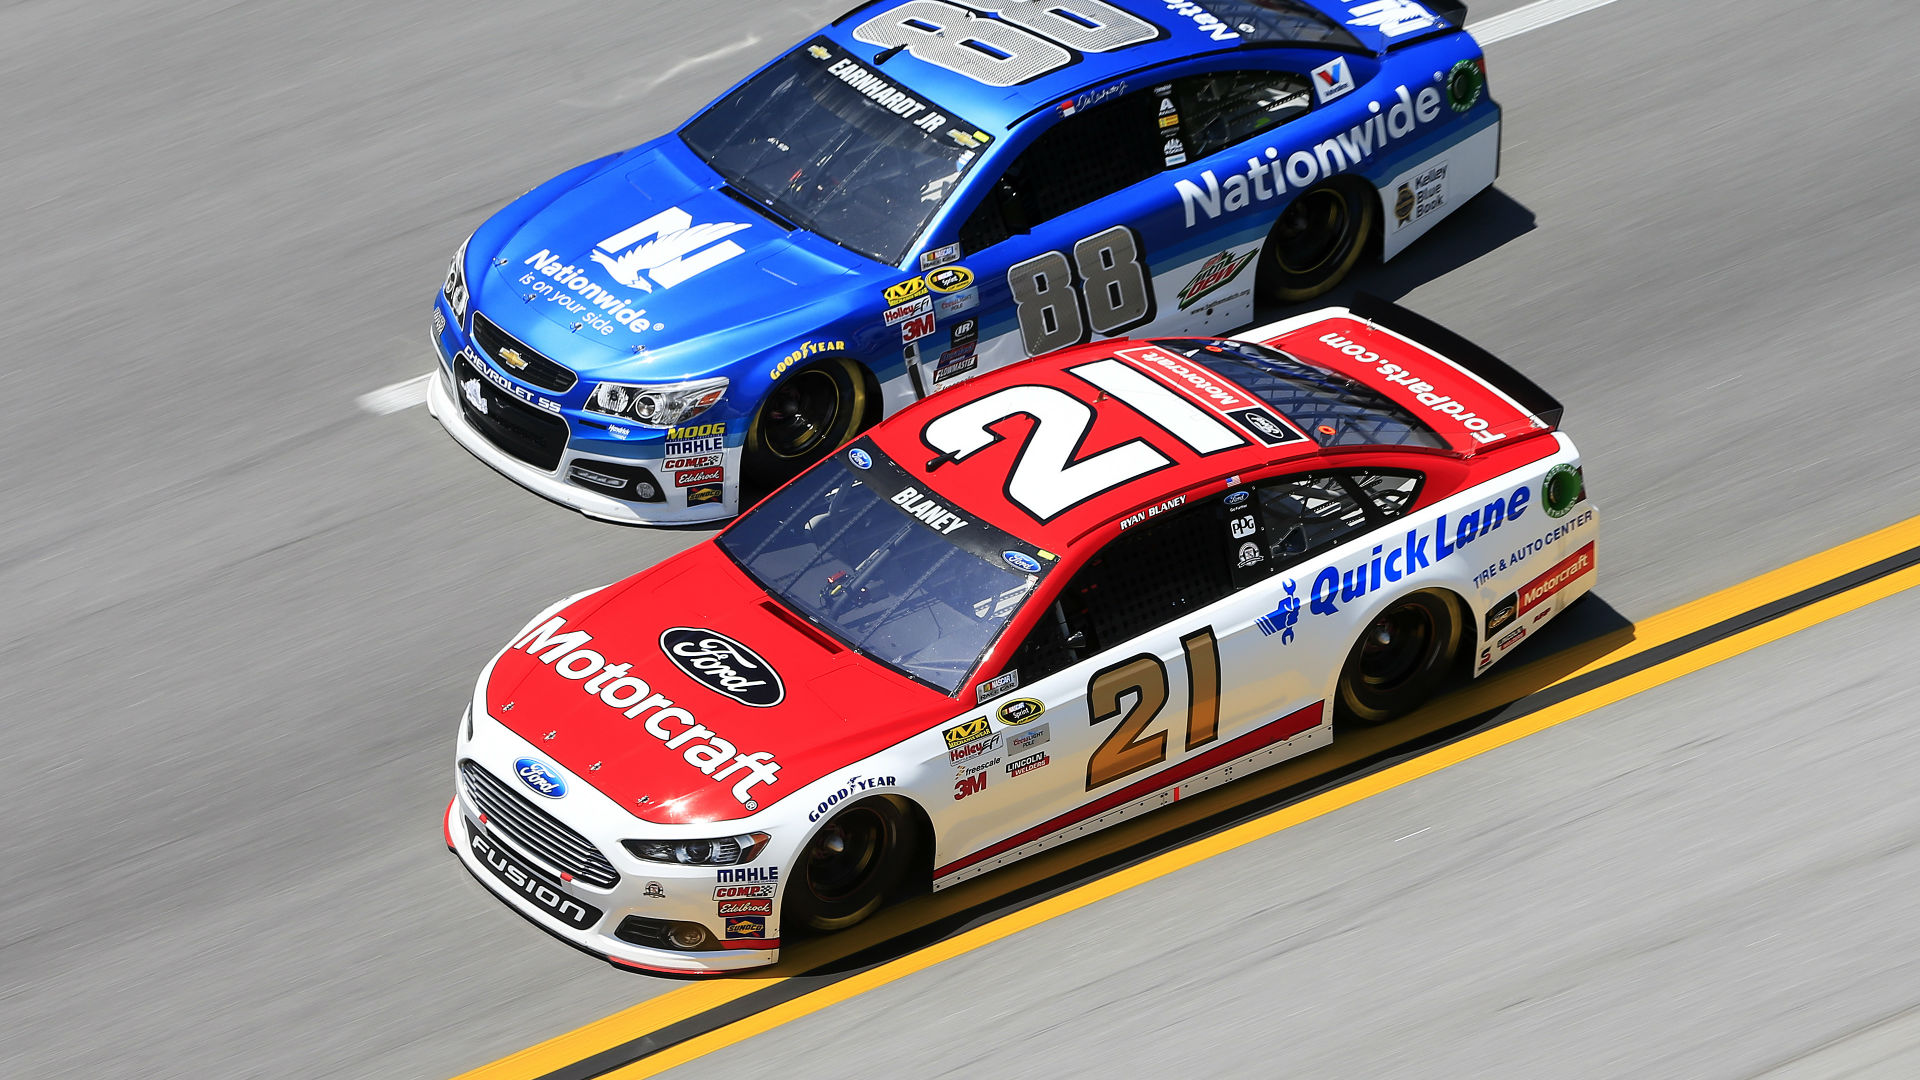 Ryan Blaney delivers top-five finish for Wood Brothers